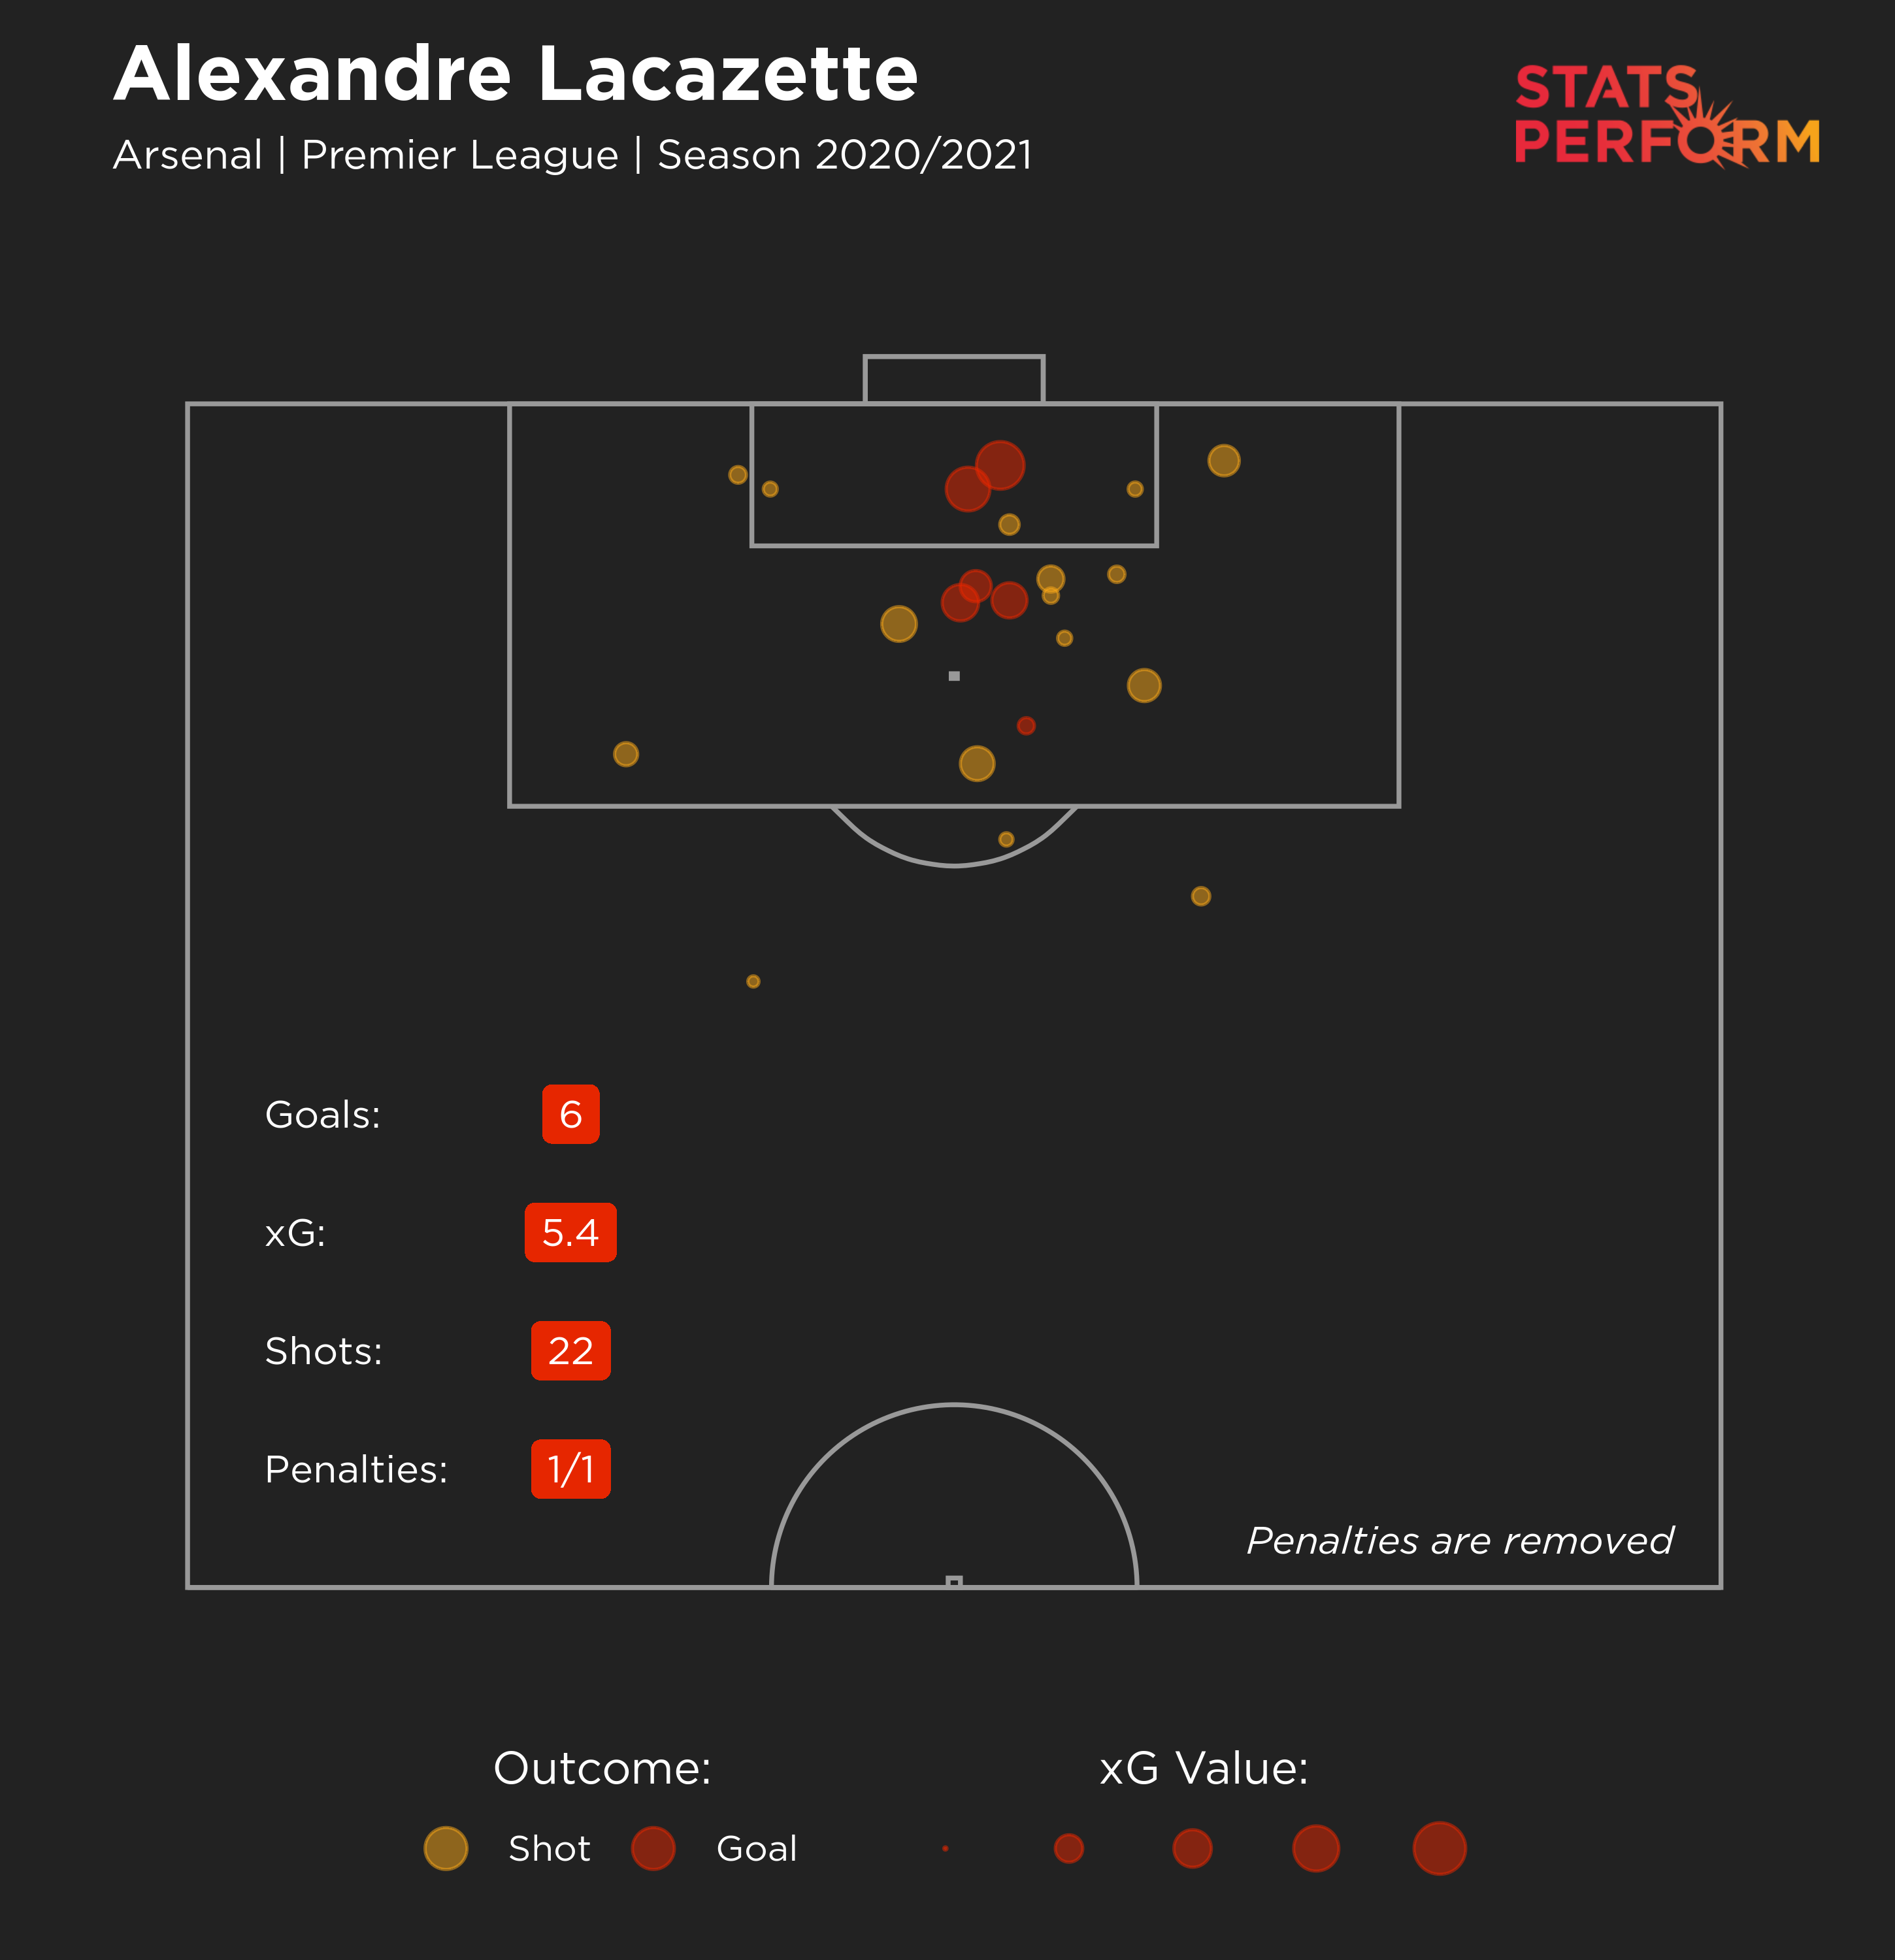 Alexandre Lacazette's attacking output in 2020-21